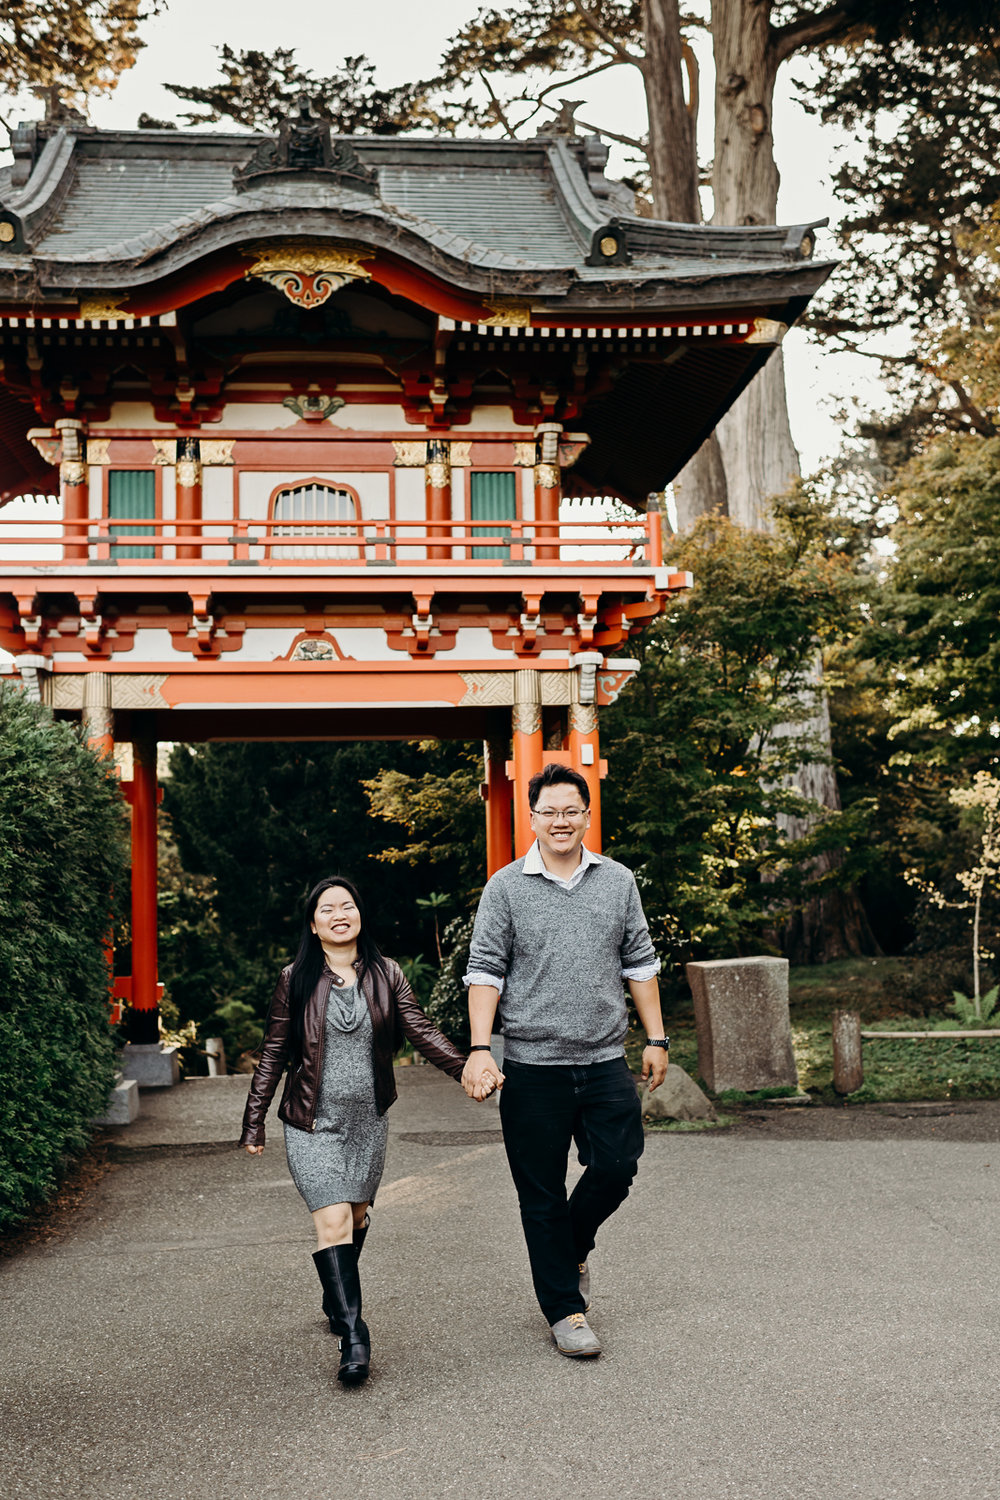 Engaged couple holding hands in front of the Thai pavillion at the Japanese Tea Garden in San Francisco's Golden Gate Park.